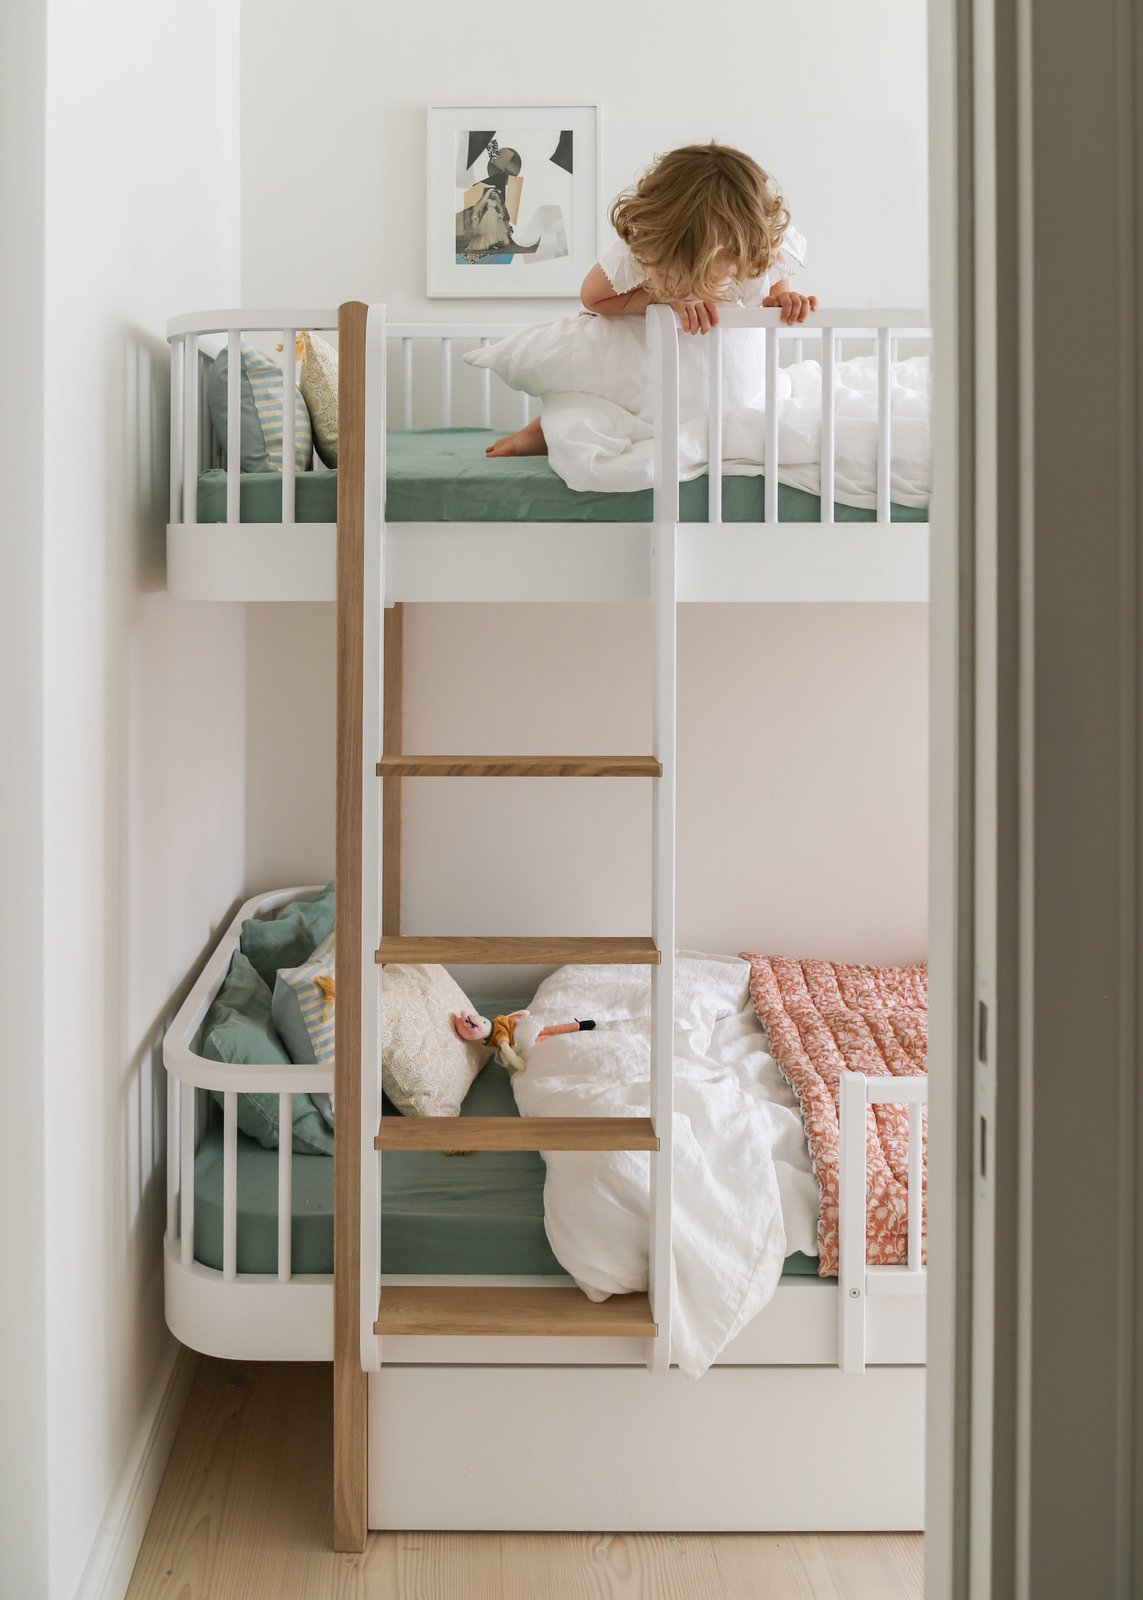 White Arrow Berlin Apartment Renovation Kids Room Bunkbeds